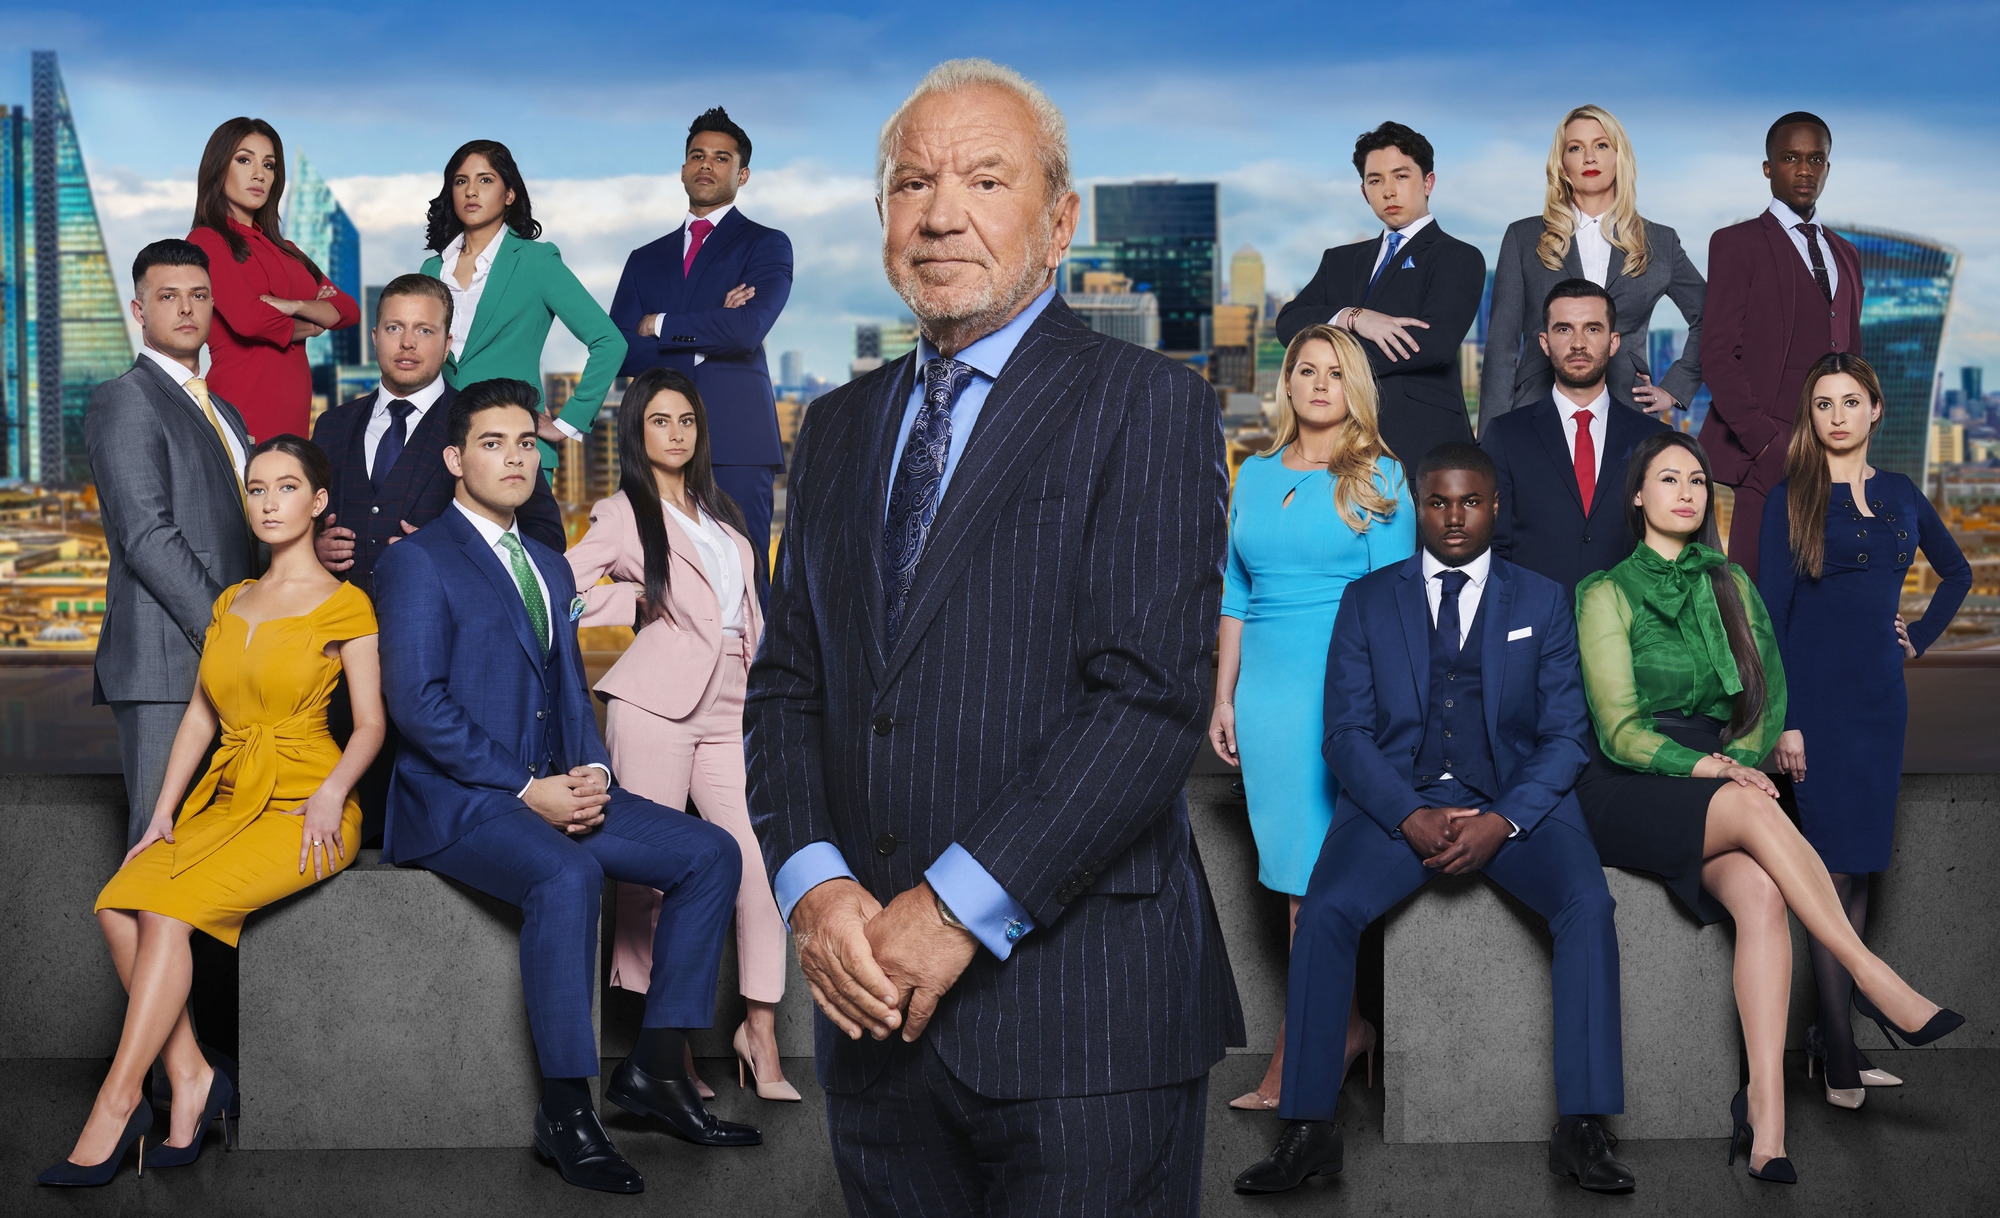 The Apprentice viewers baffled by embarrassing boardroom blunder